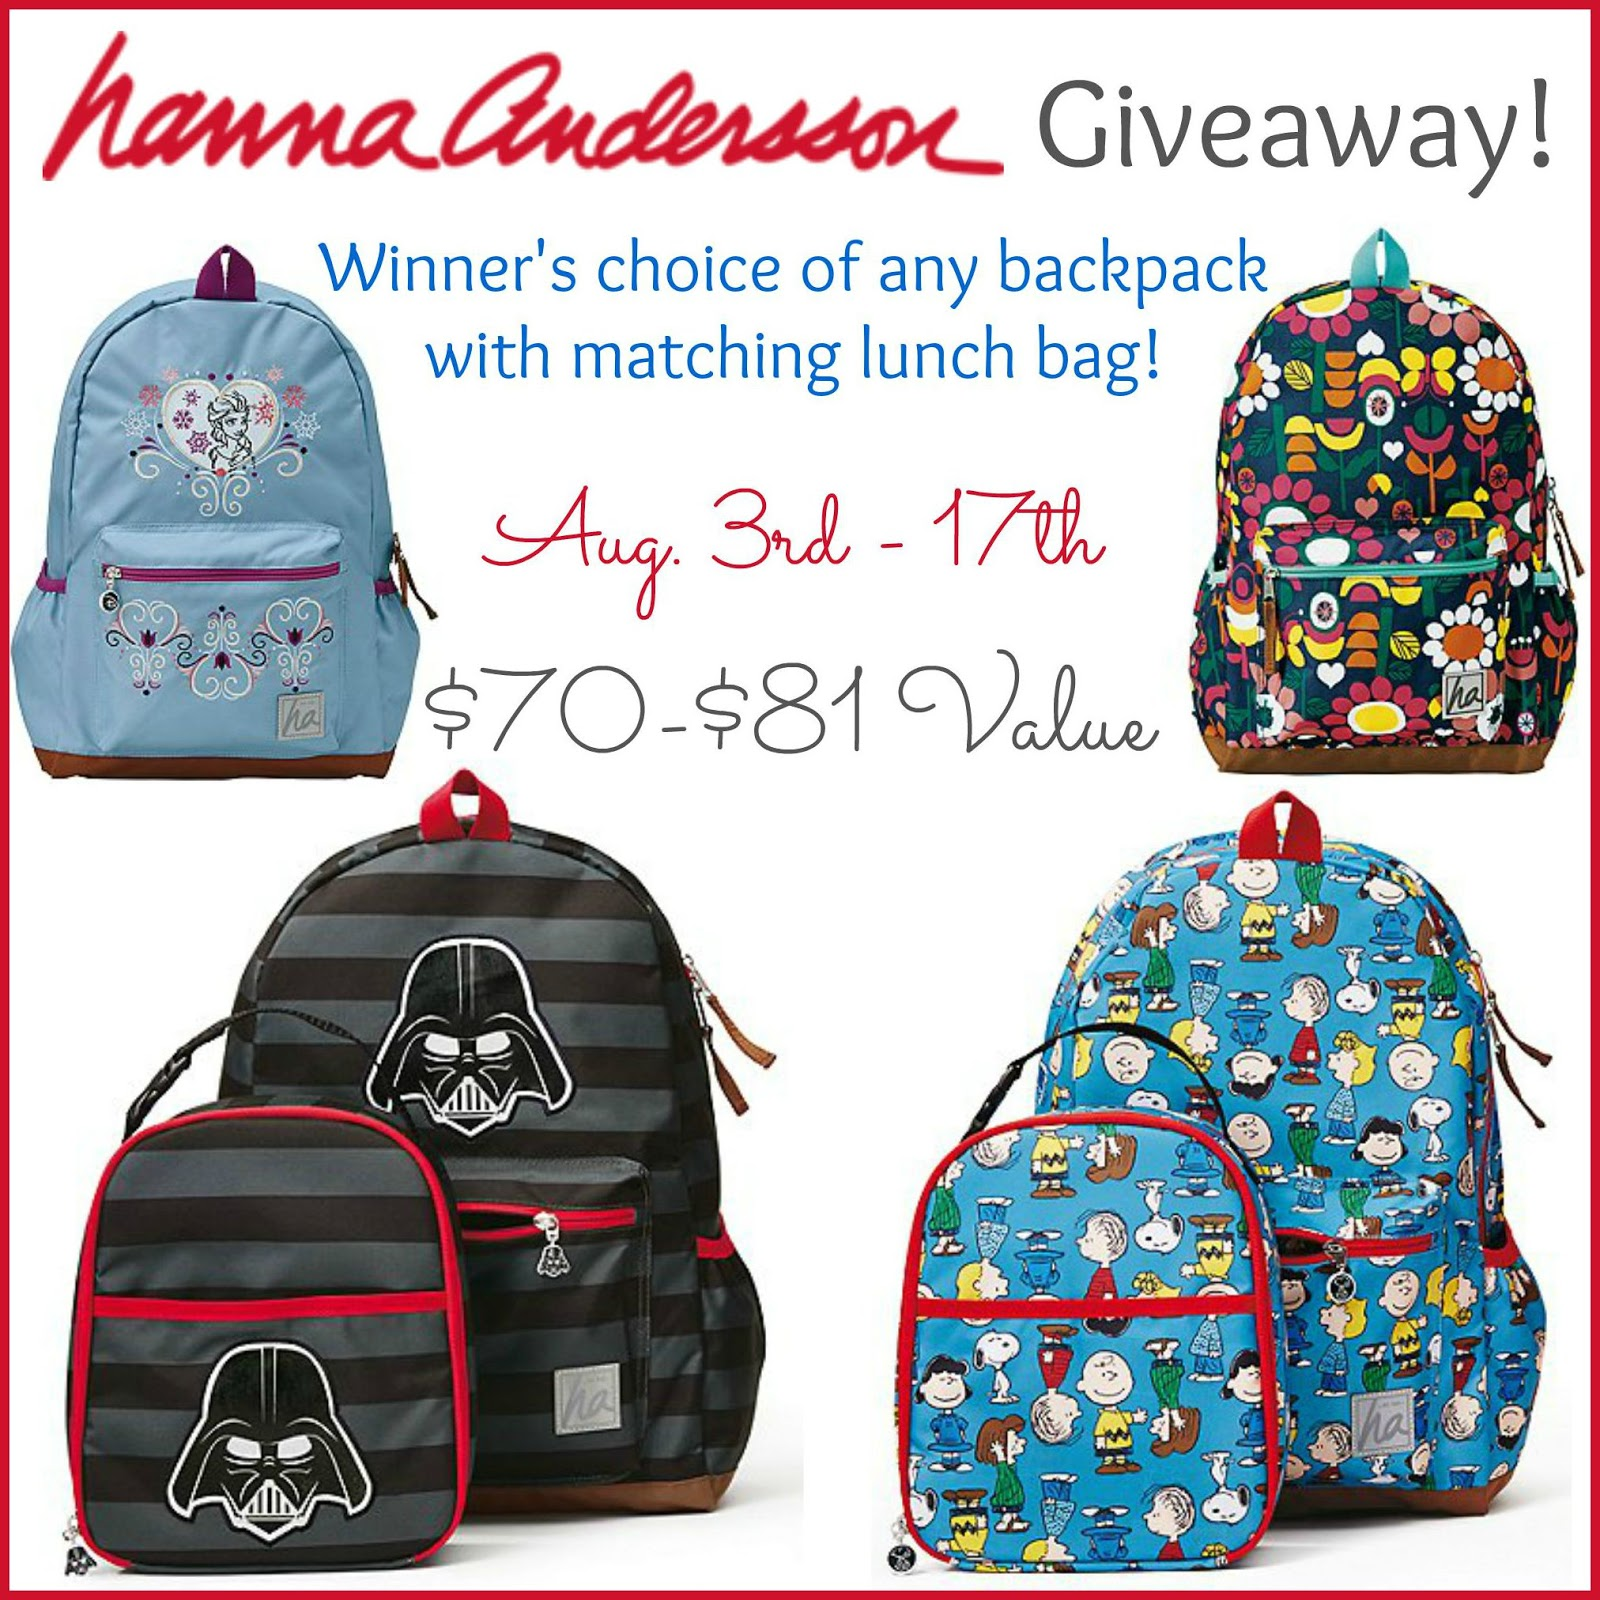 WHEN IS THE FREE BACKPACK GIVEAWAY 2019